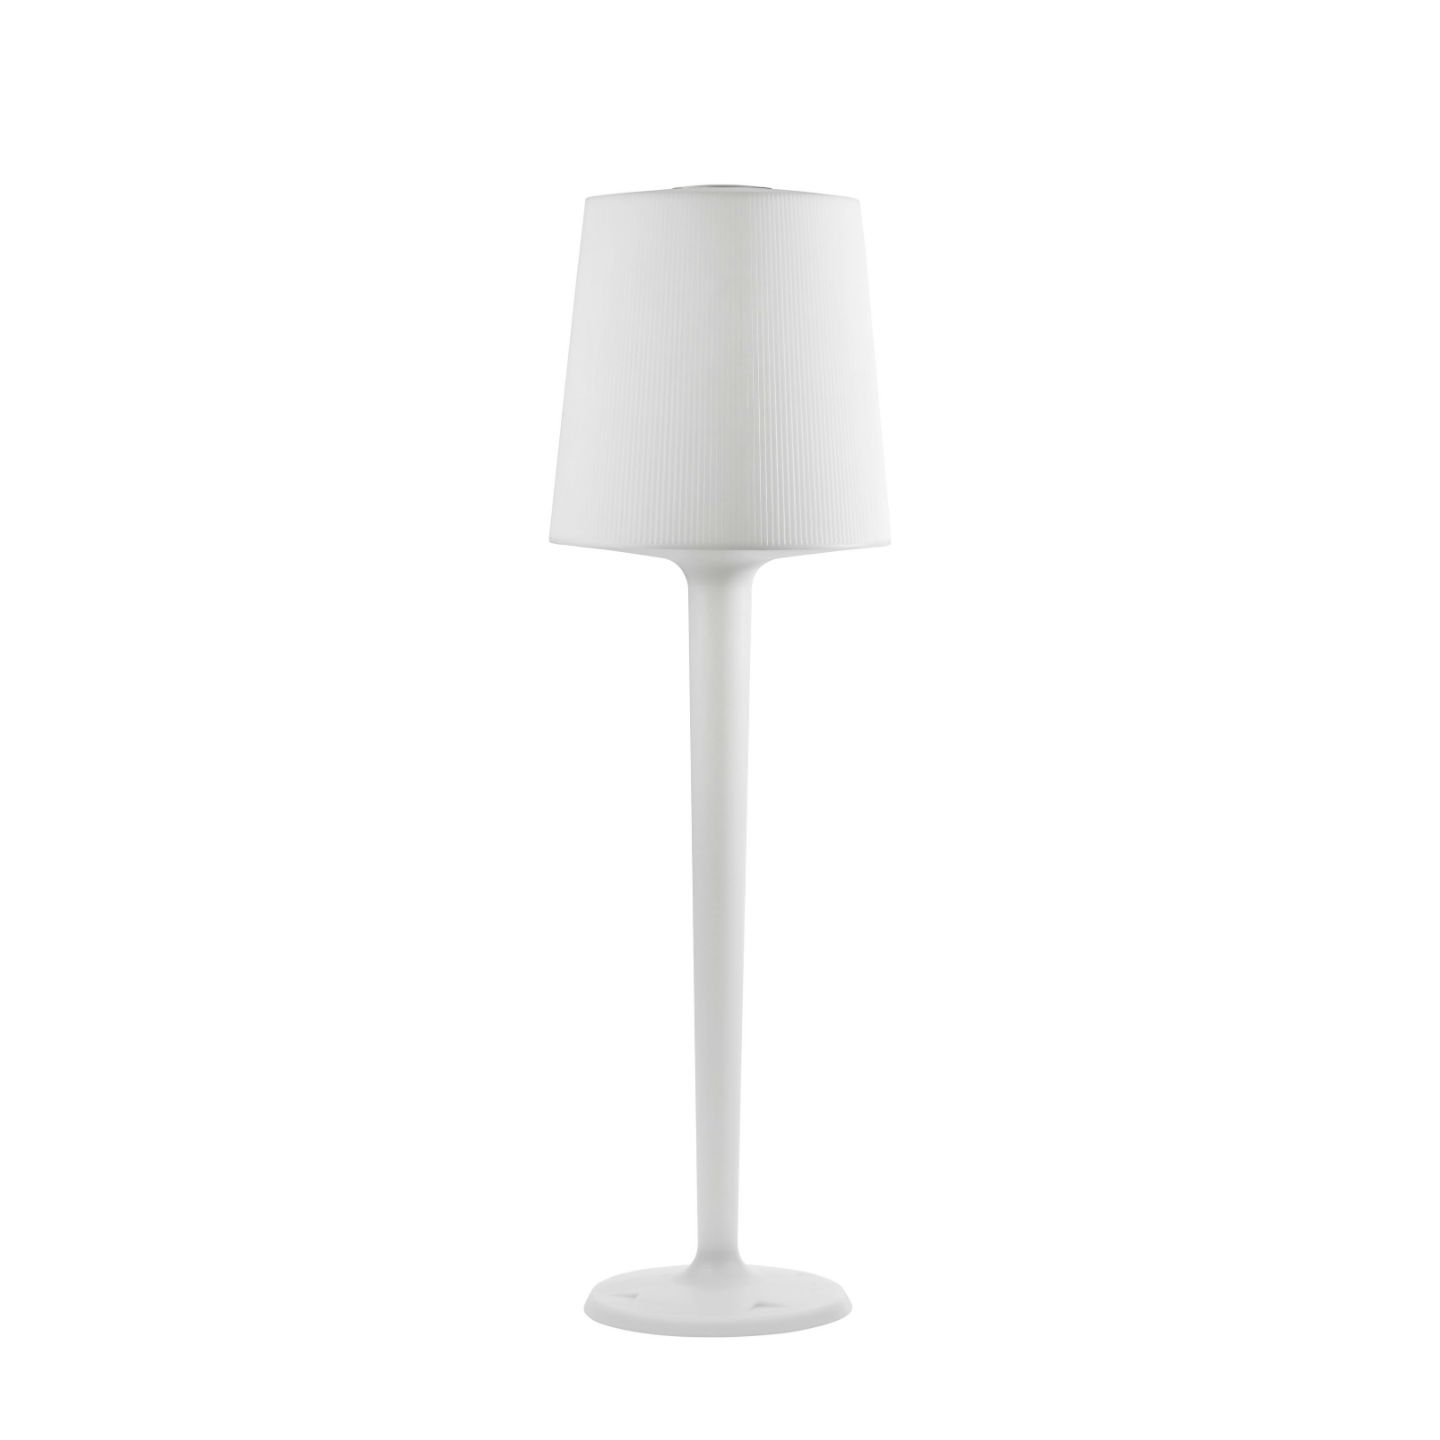 Inout Floor Lamp Medium of Outdoor white